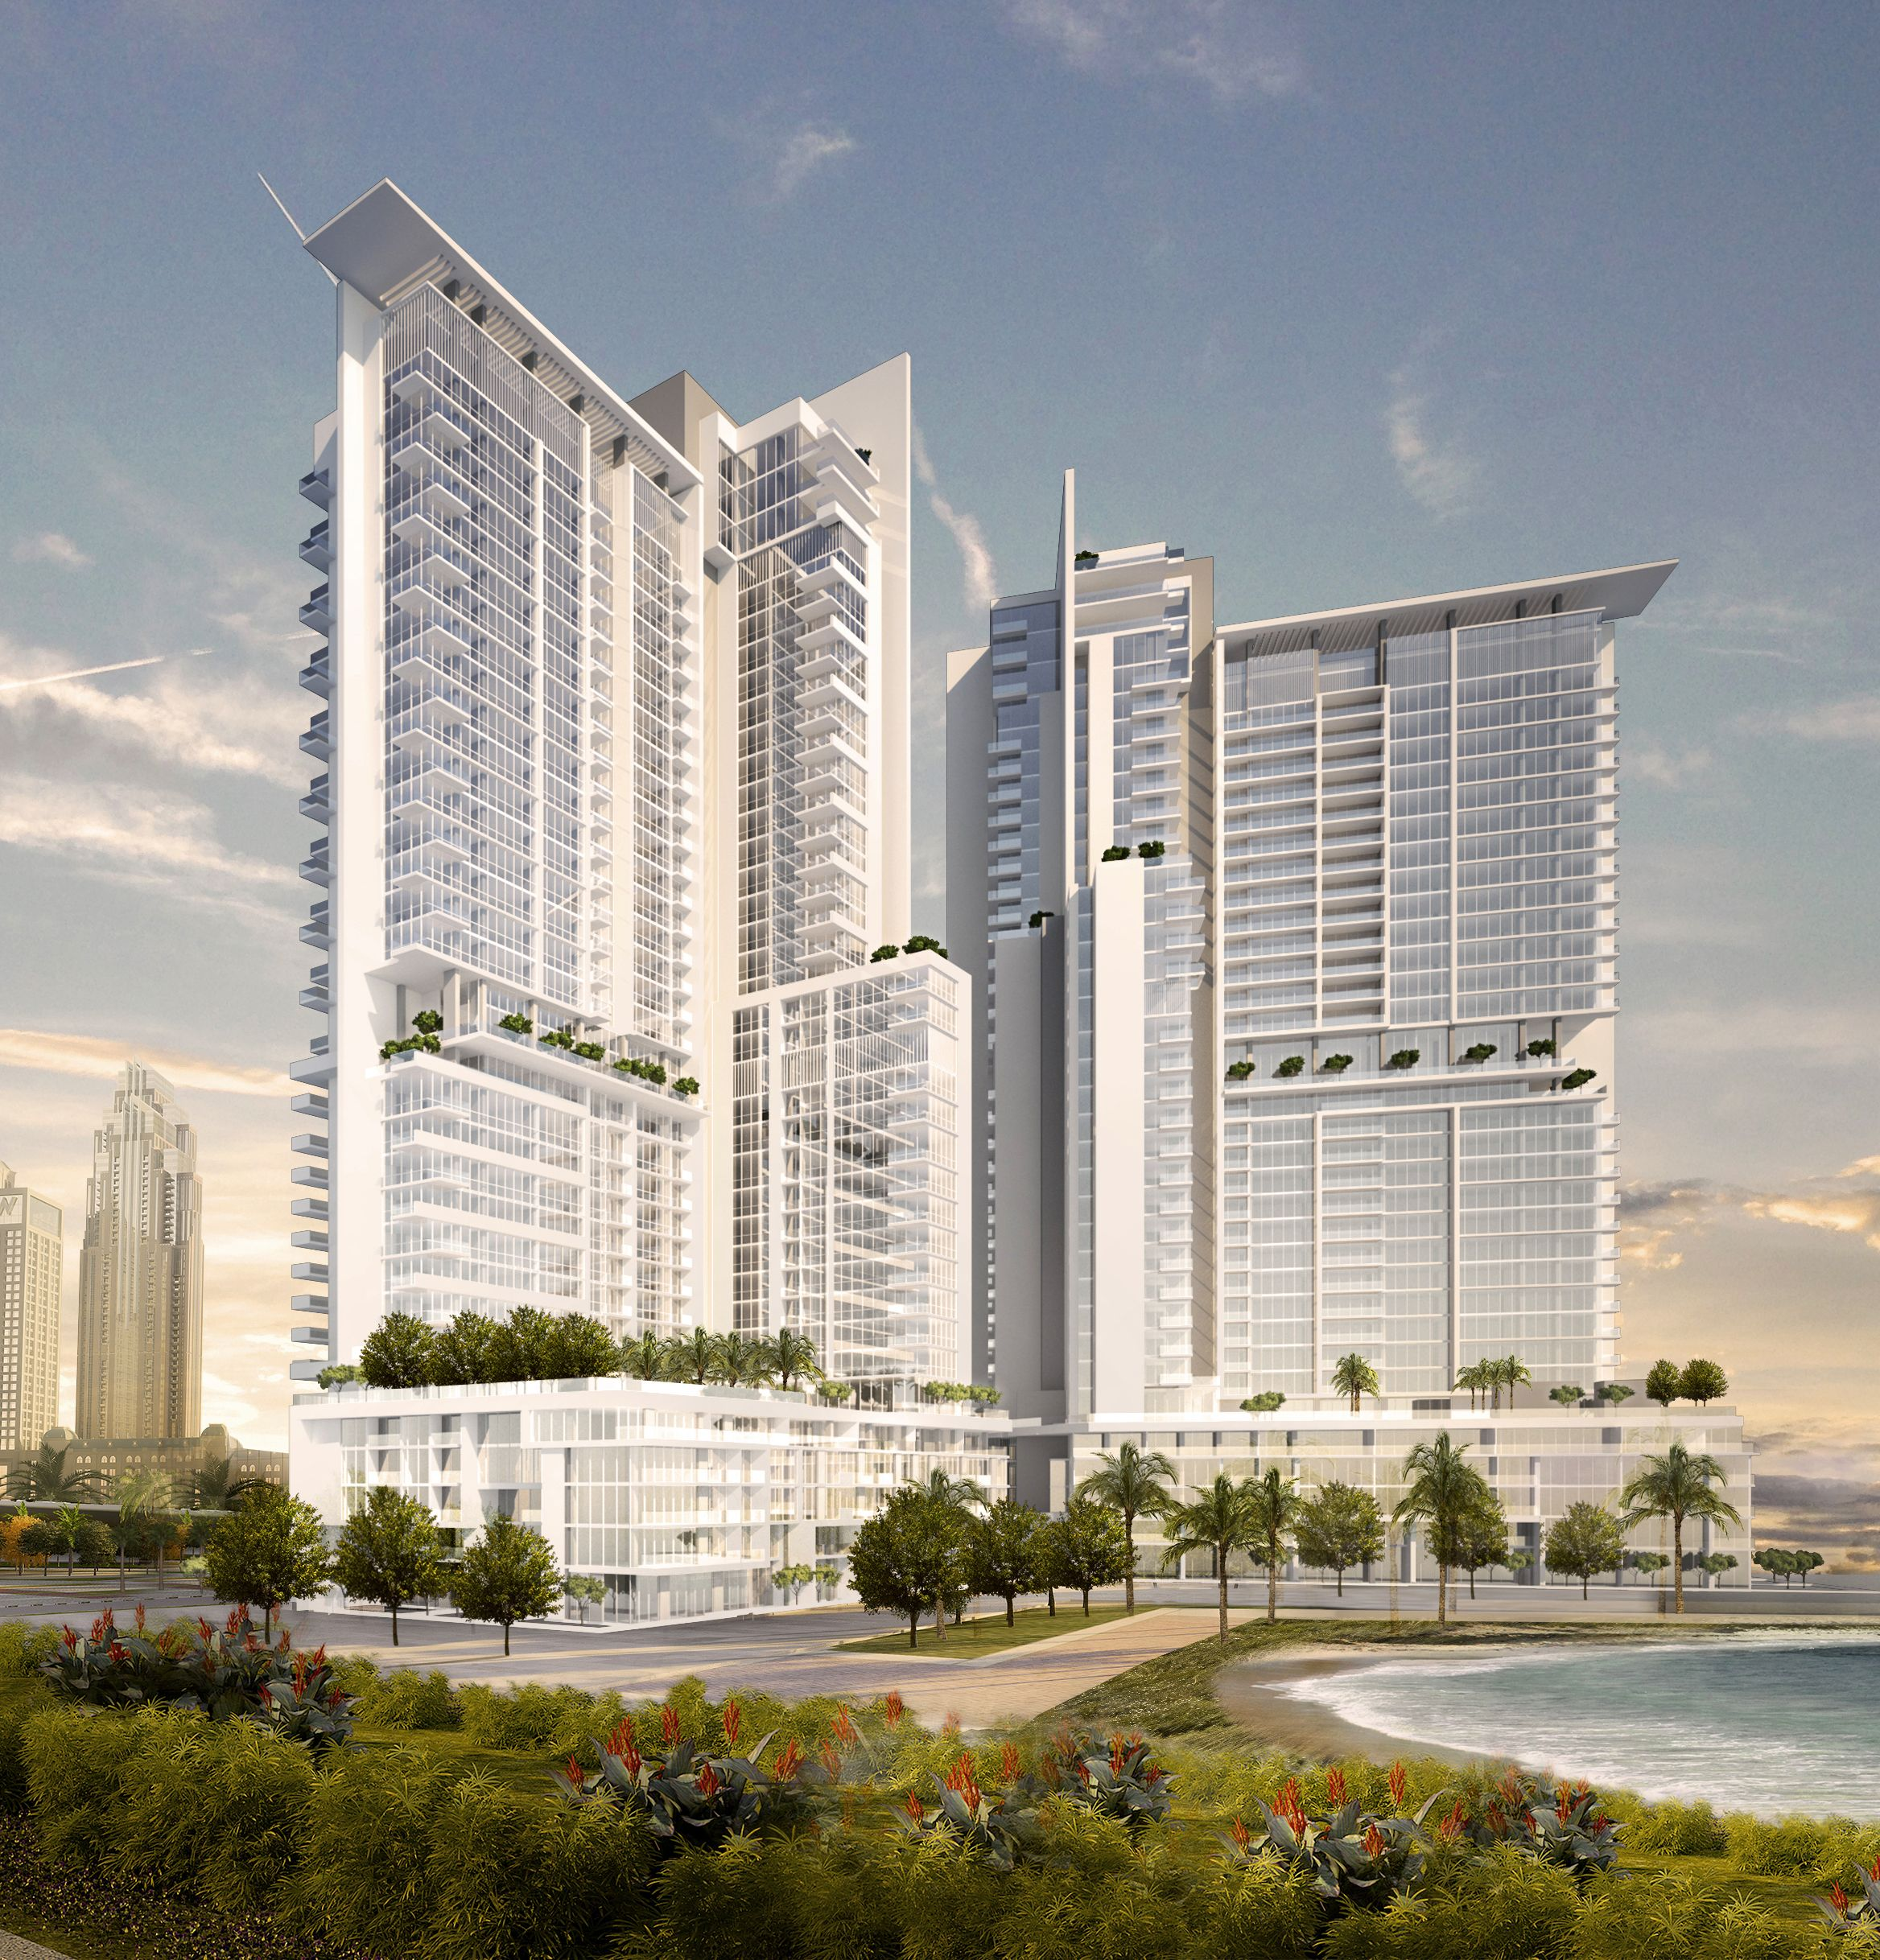 Ae7S Crystal Lagoon Towers, A Residential Development That Includes Two